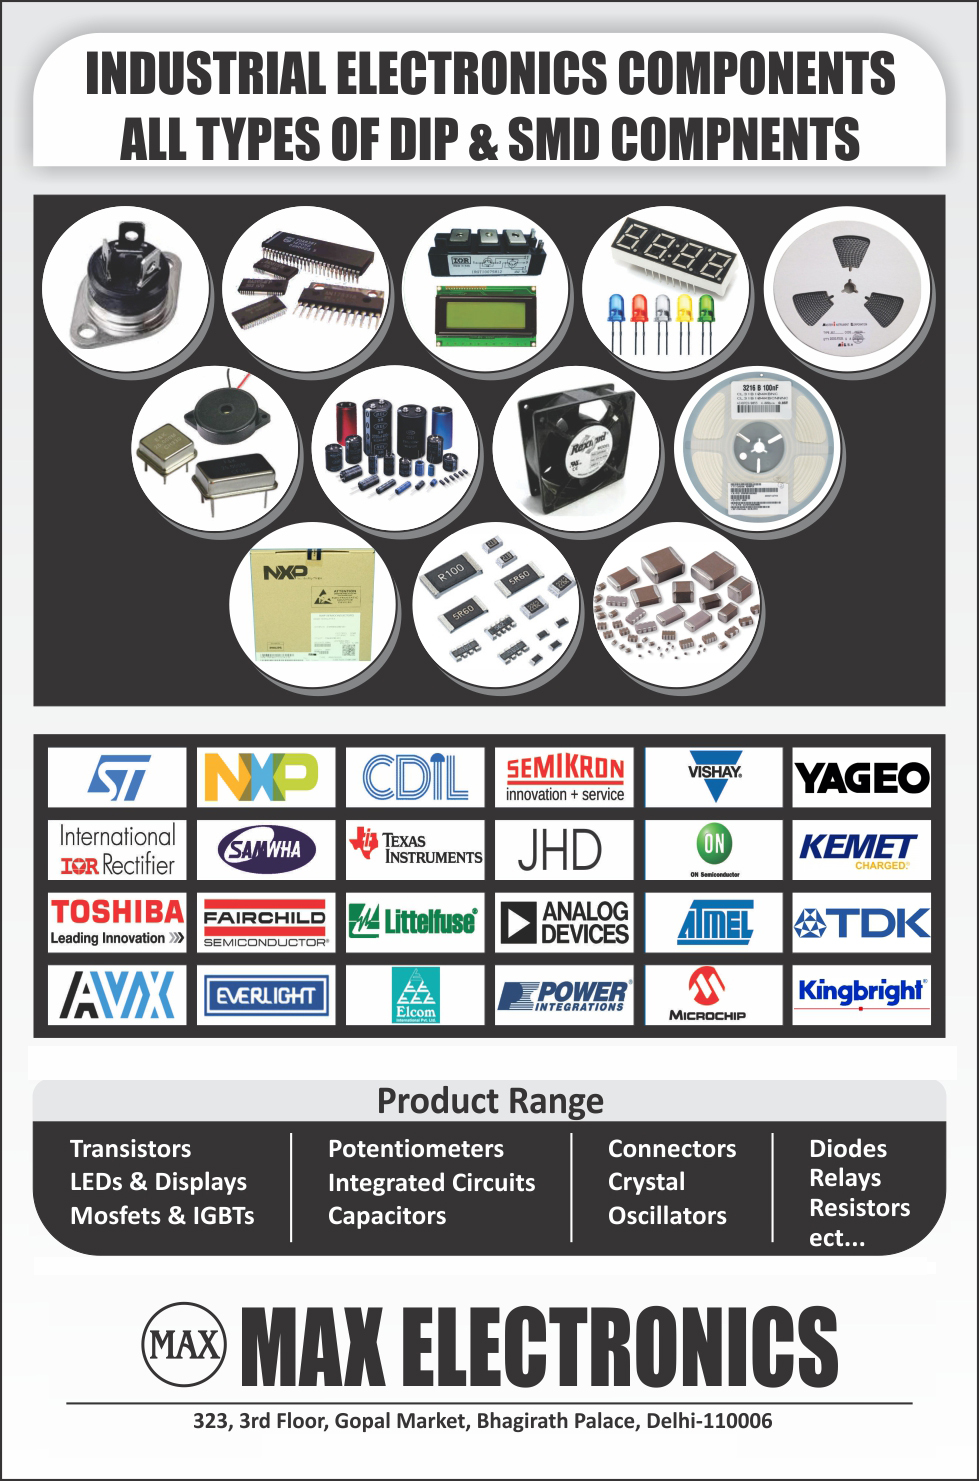 Industrial Electronics Components, DIP Components, SMD Components, Semiconductors, Power Modules, Power Semiconductor, Led Displays, Relays, Electrolytic Capacitors, Resistors, Ceramic Capacitors, Diodes